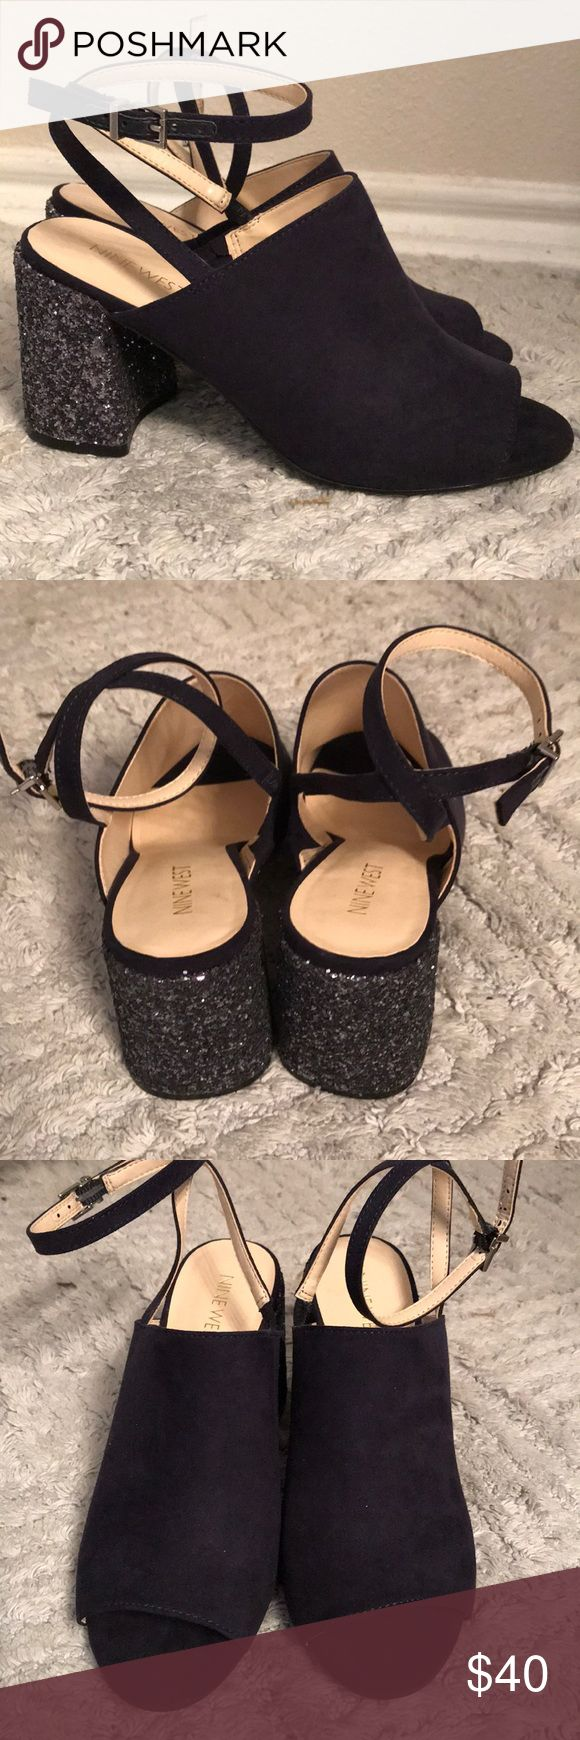 """10% OFF SHOES!! NEW Nine West Ankle Strap Heel Nine West.   Suede peep toe shoe with sparkling block heel. Thin ankle strap with adjustable buckle.  3"""" Heel height. Navy. Size 6 1/2 New!  Soooo cute! Never worn, too small for me! Nine West Shoes Heels"""